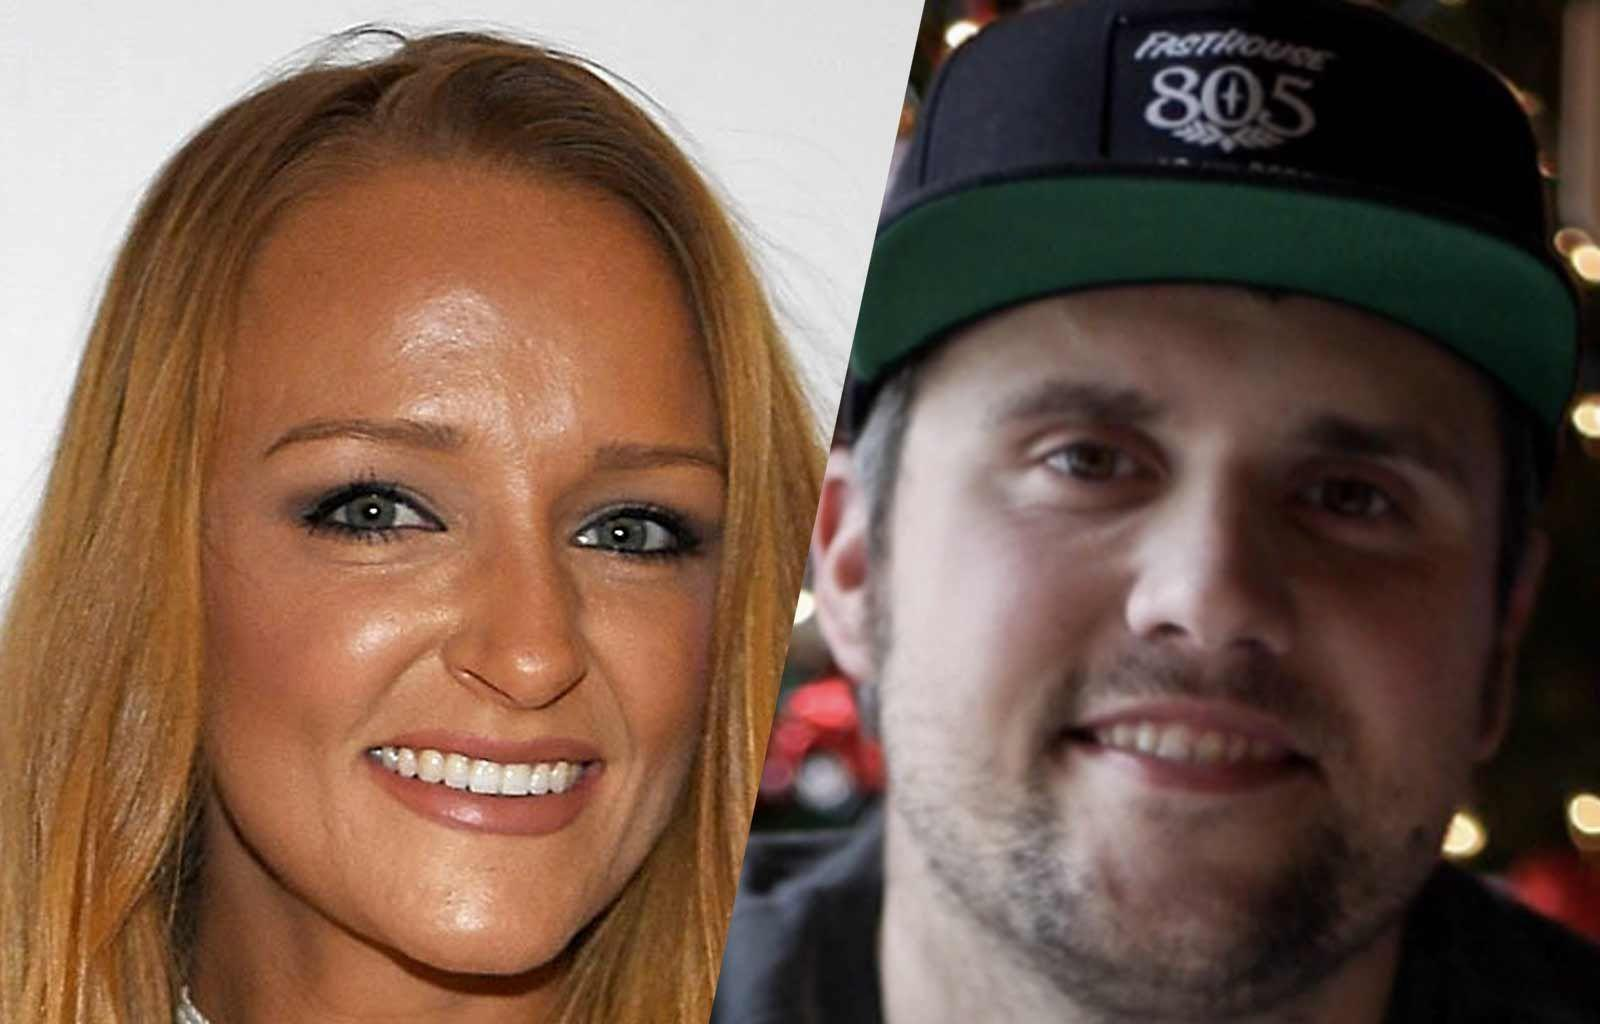 Maci Bookout - Will She Stay On 'Teen Mom' After Ryan Edwards' Firing?